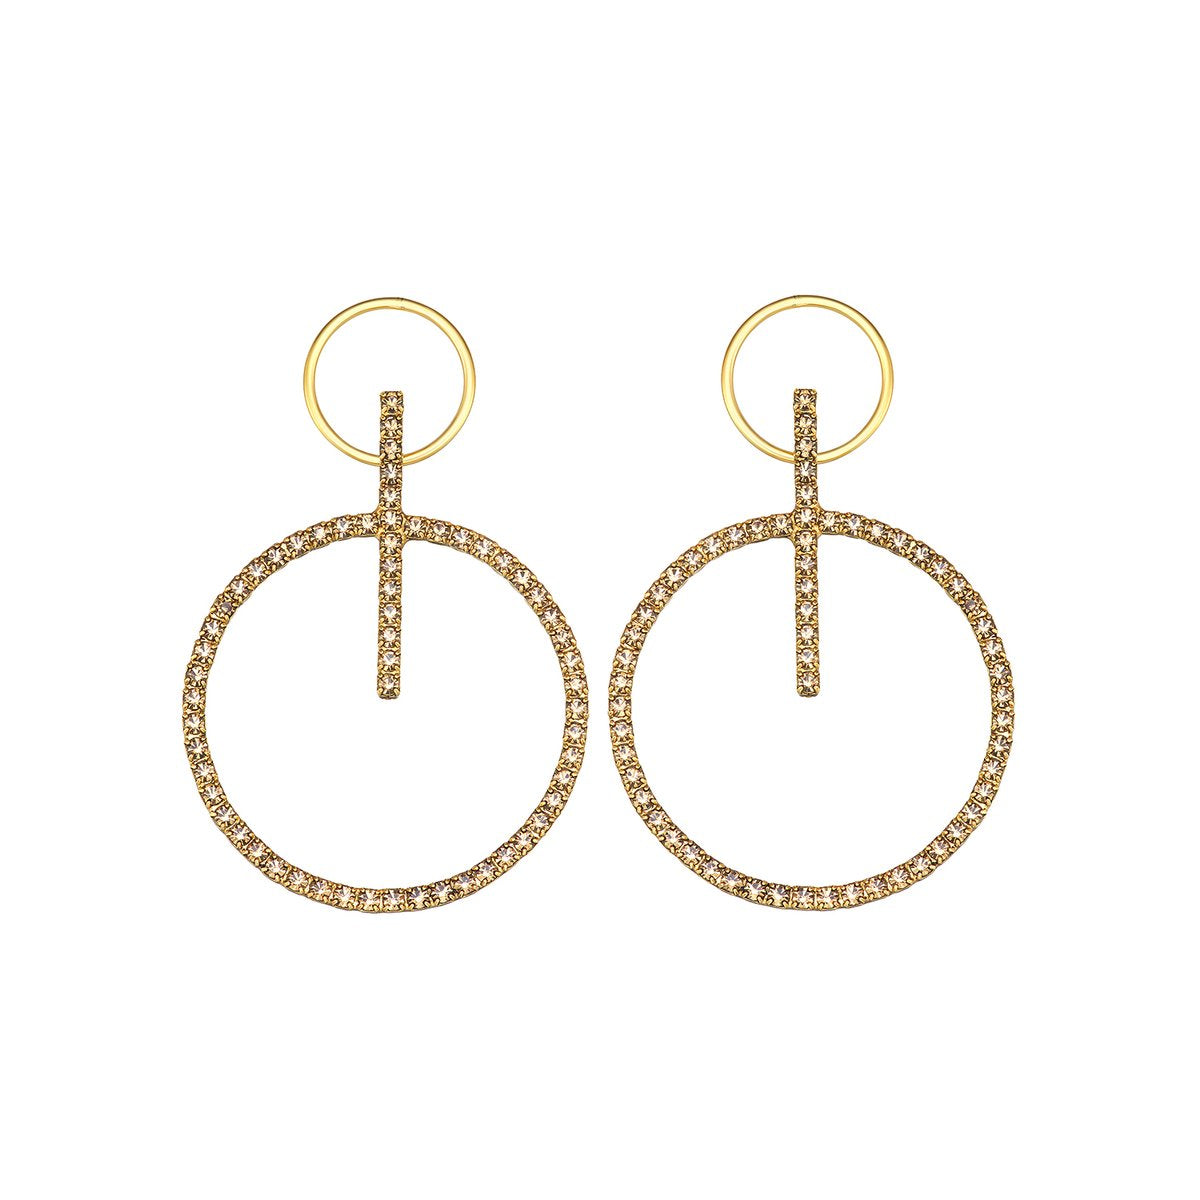 Gabriella Hoop Earrings - Outlette Jewelry